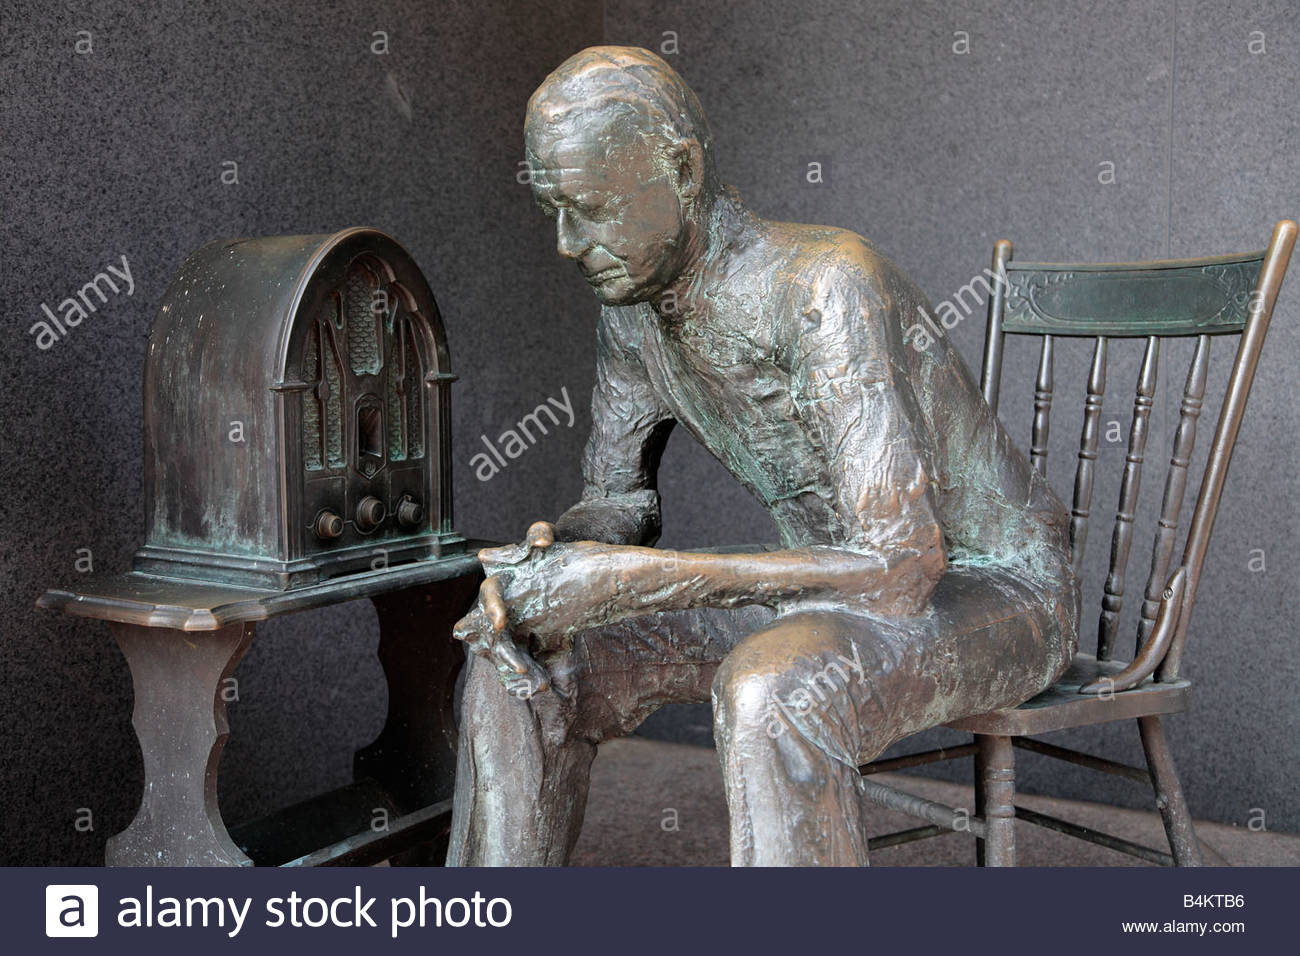 The Fireside Chat statue by George Segal at the FDR Memorial in Washington, DC - Stock Image